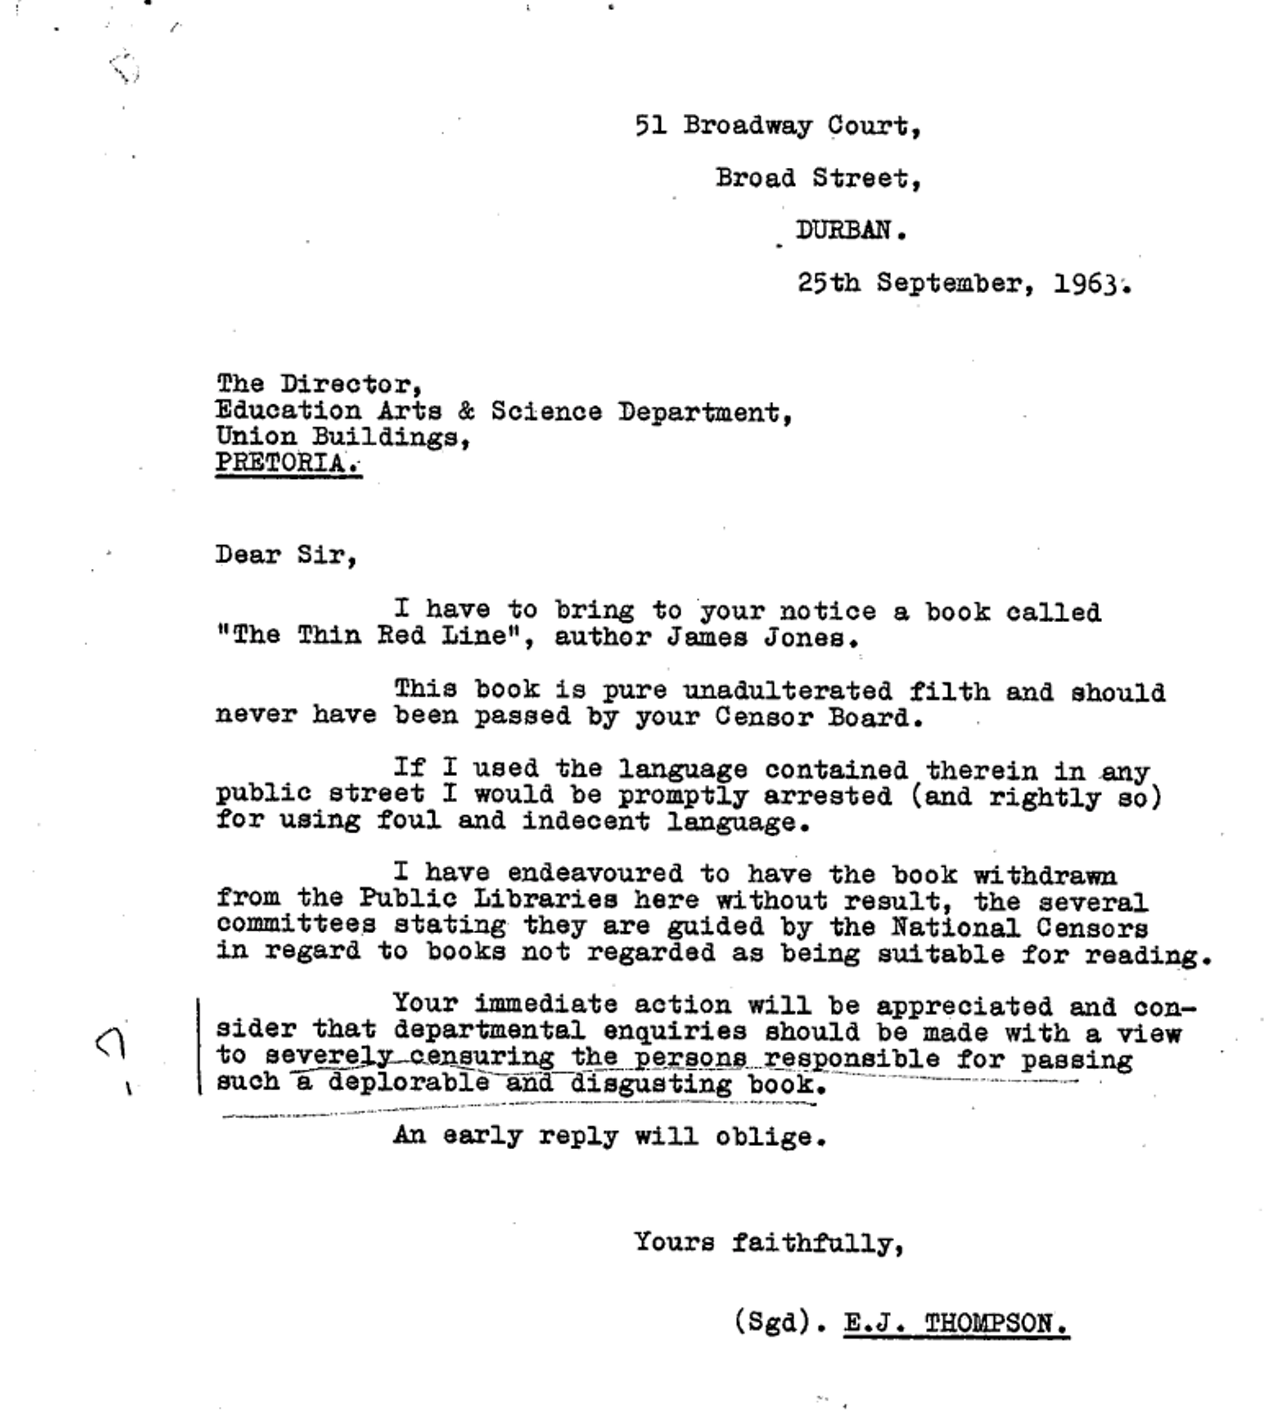 A 1963 letter demanding that The Thin Red Line be banned.